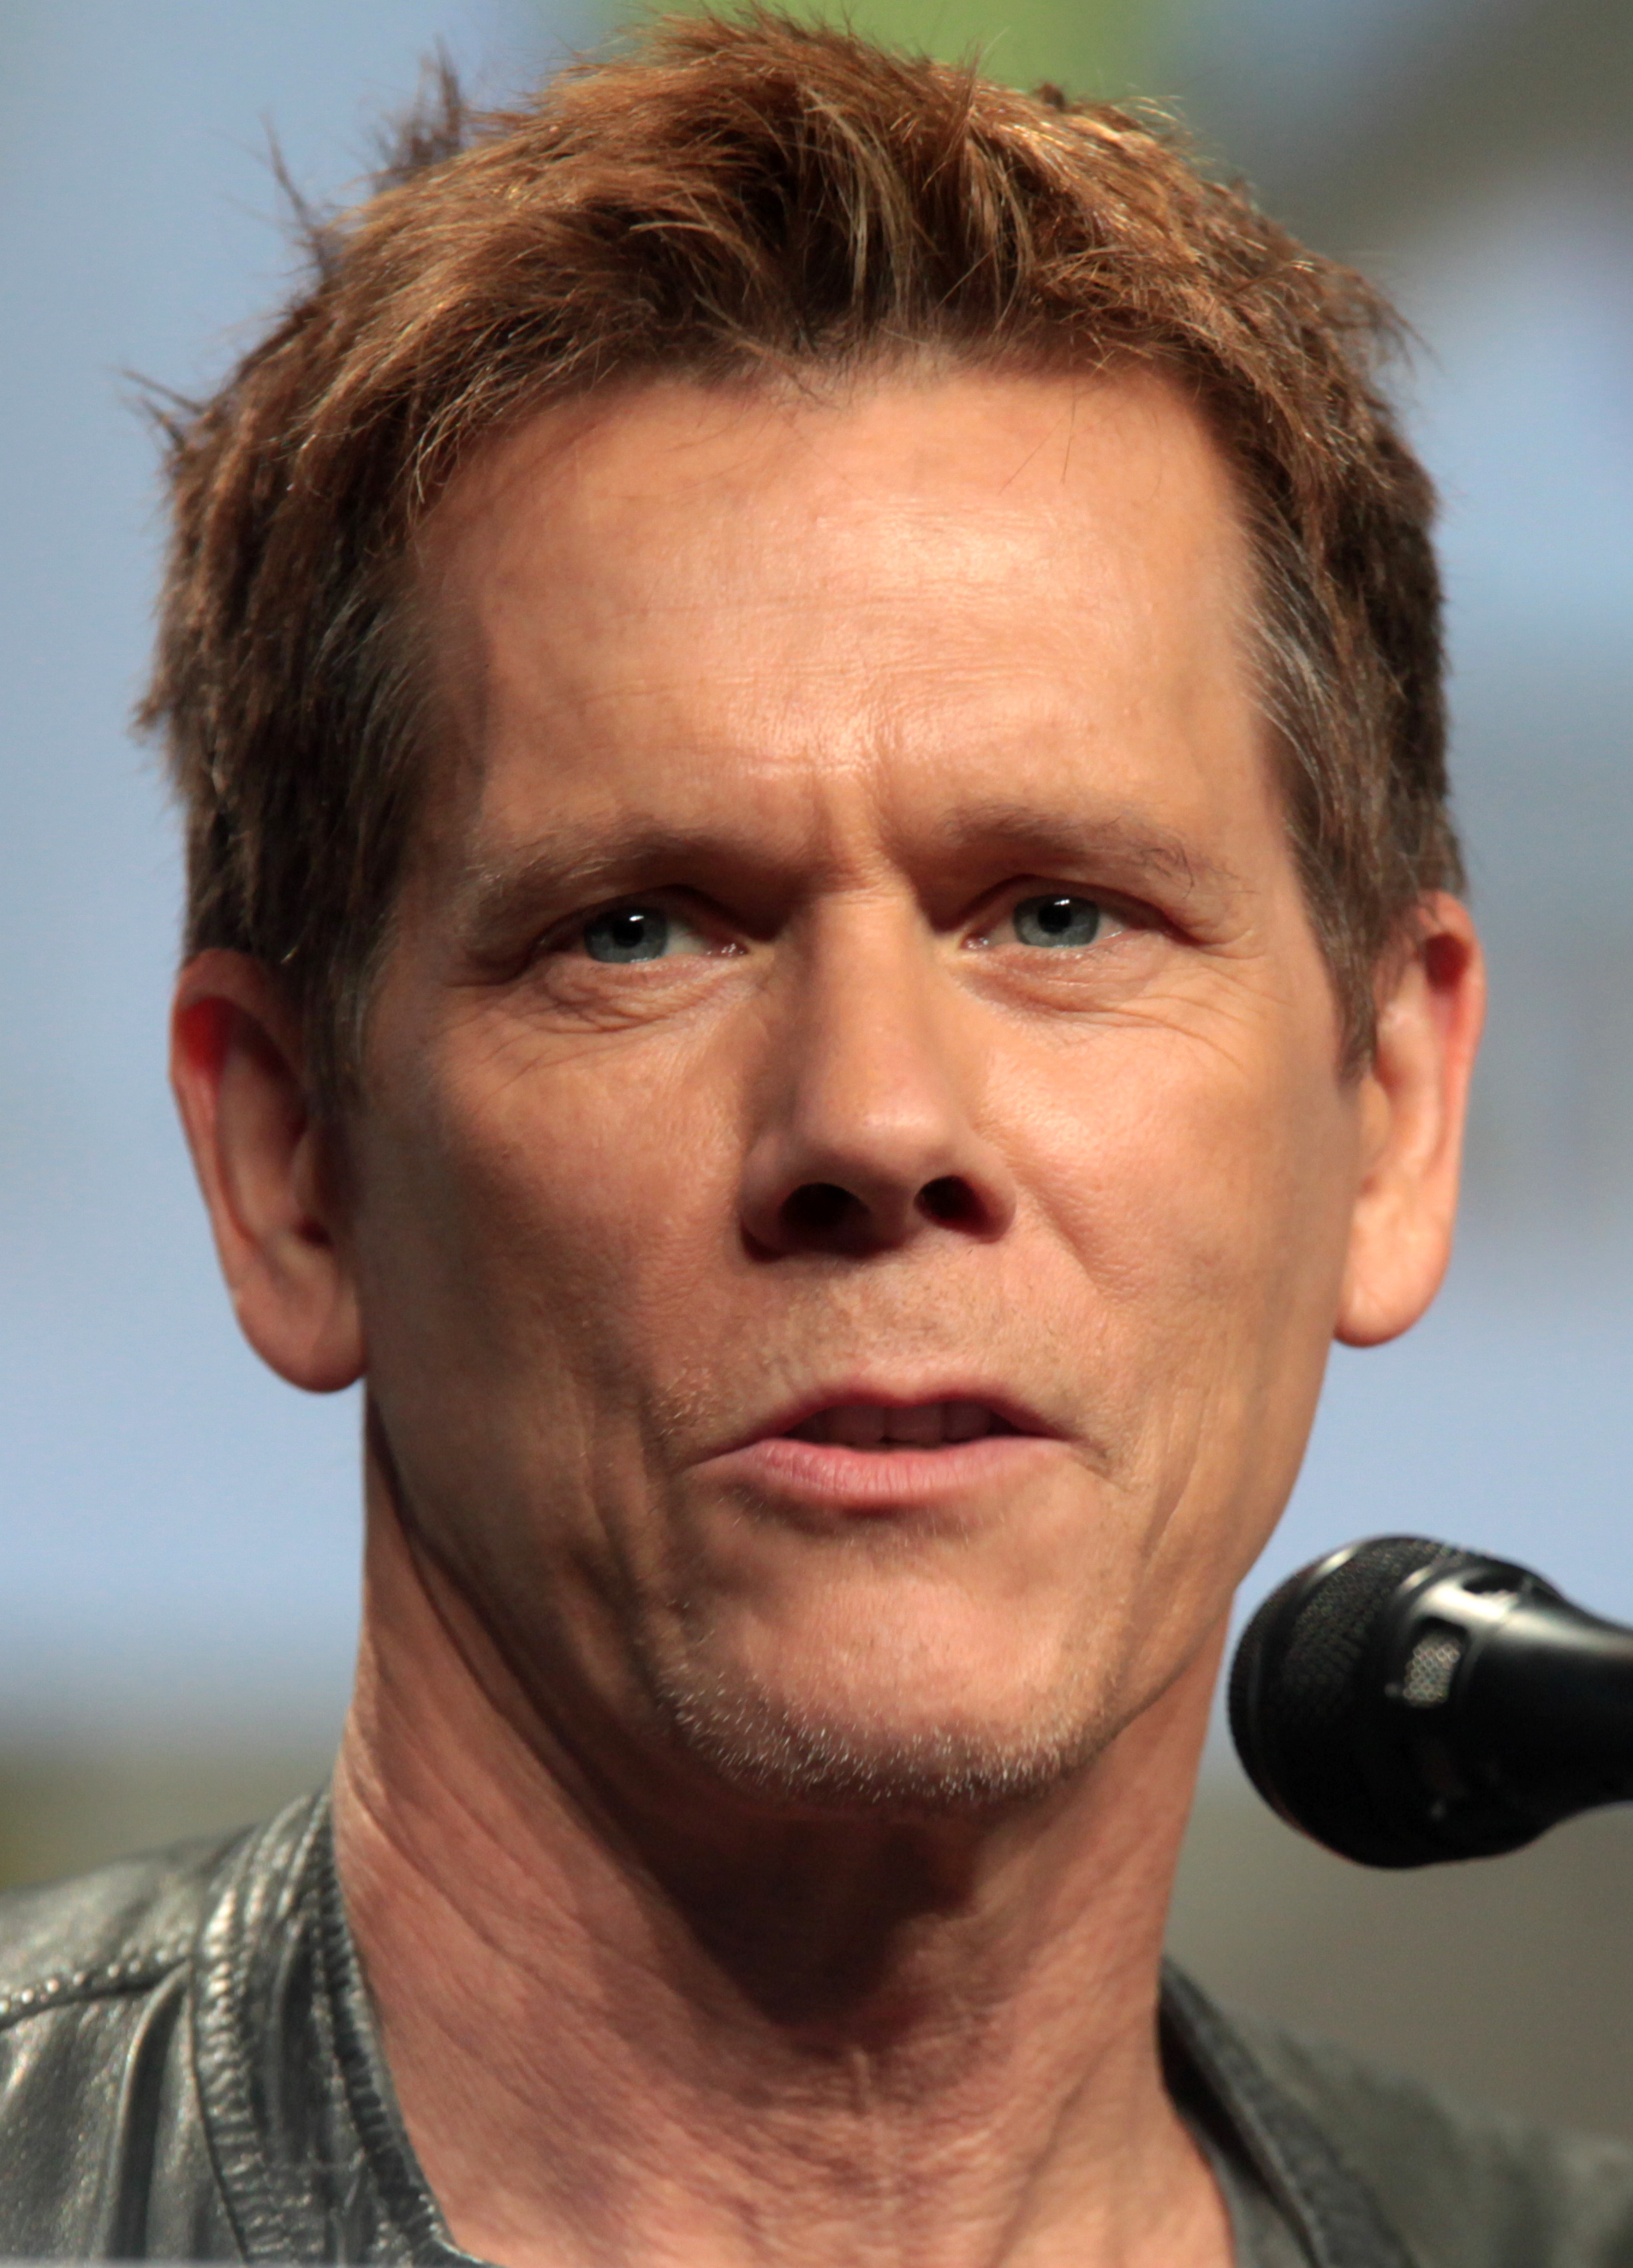 Movie Stars Have Their Uses Medical >> Kevin Bacon Wikipedia